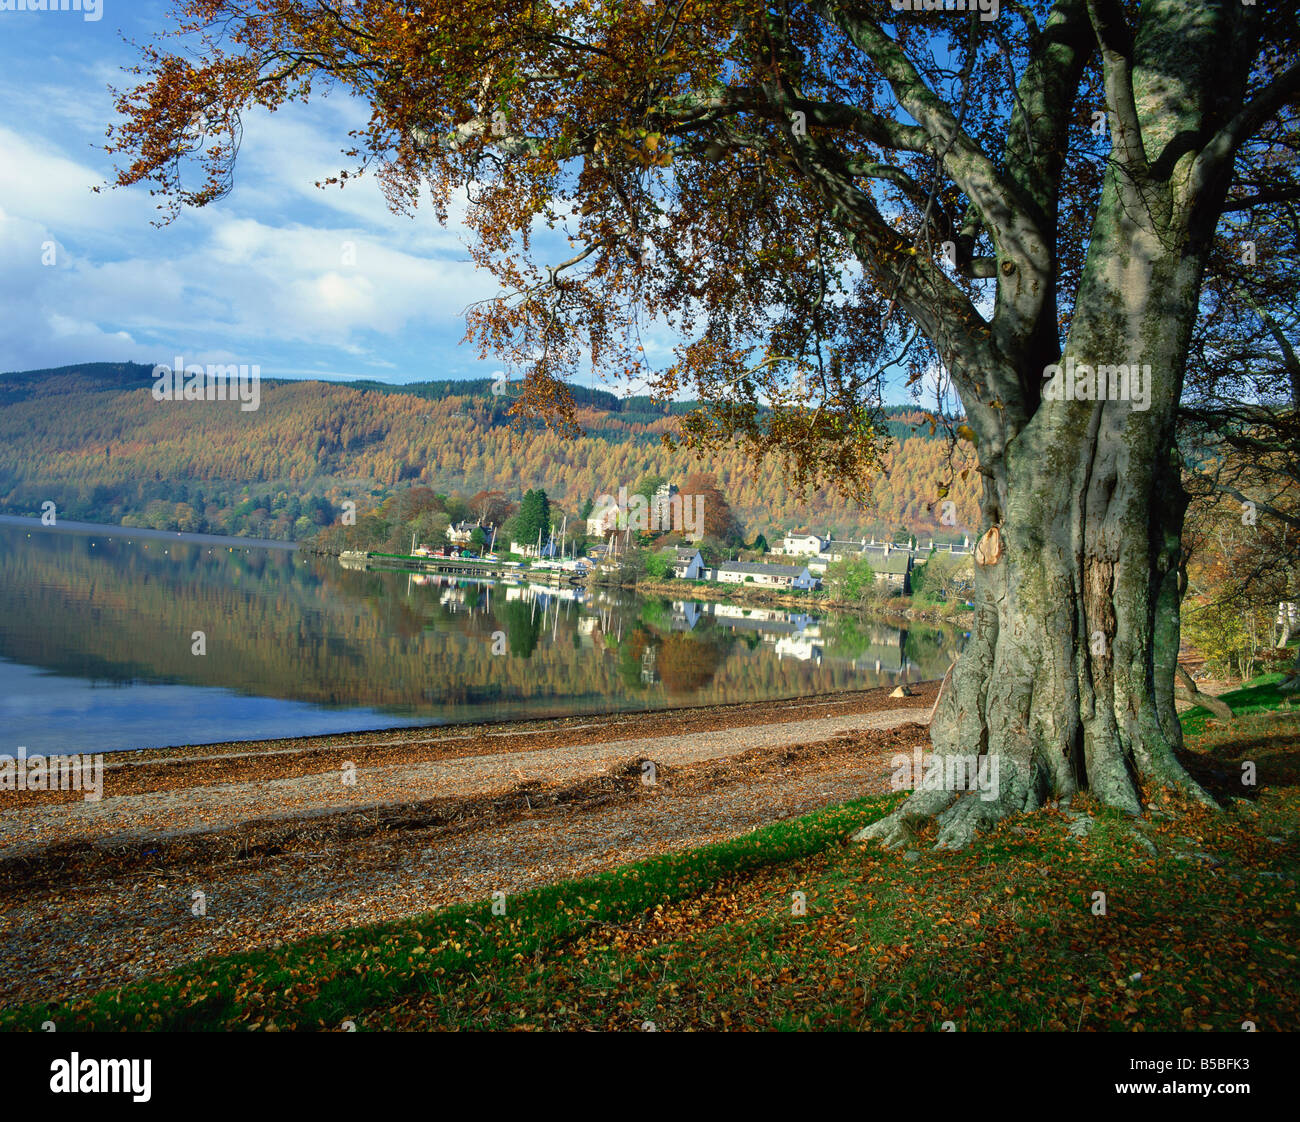 Loch Tay, Kenmore, Tayside, Highlands, Scotland, Europe - Stock Image